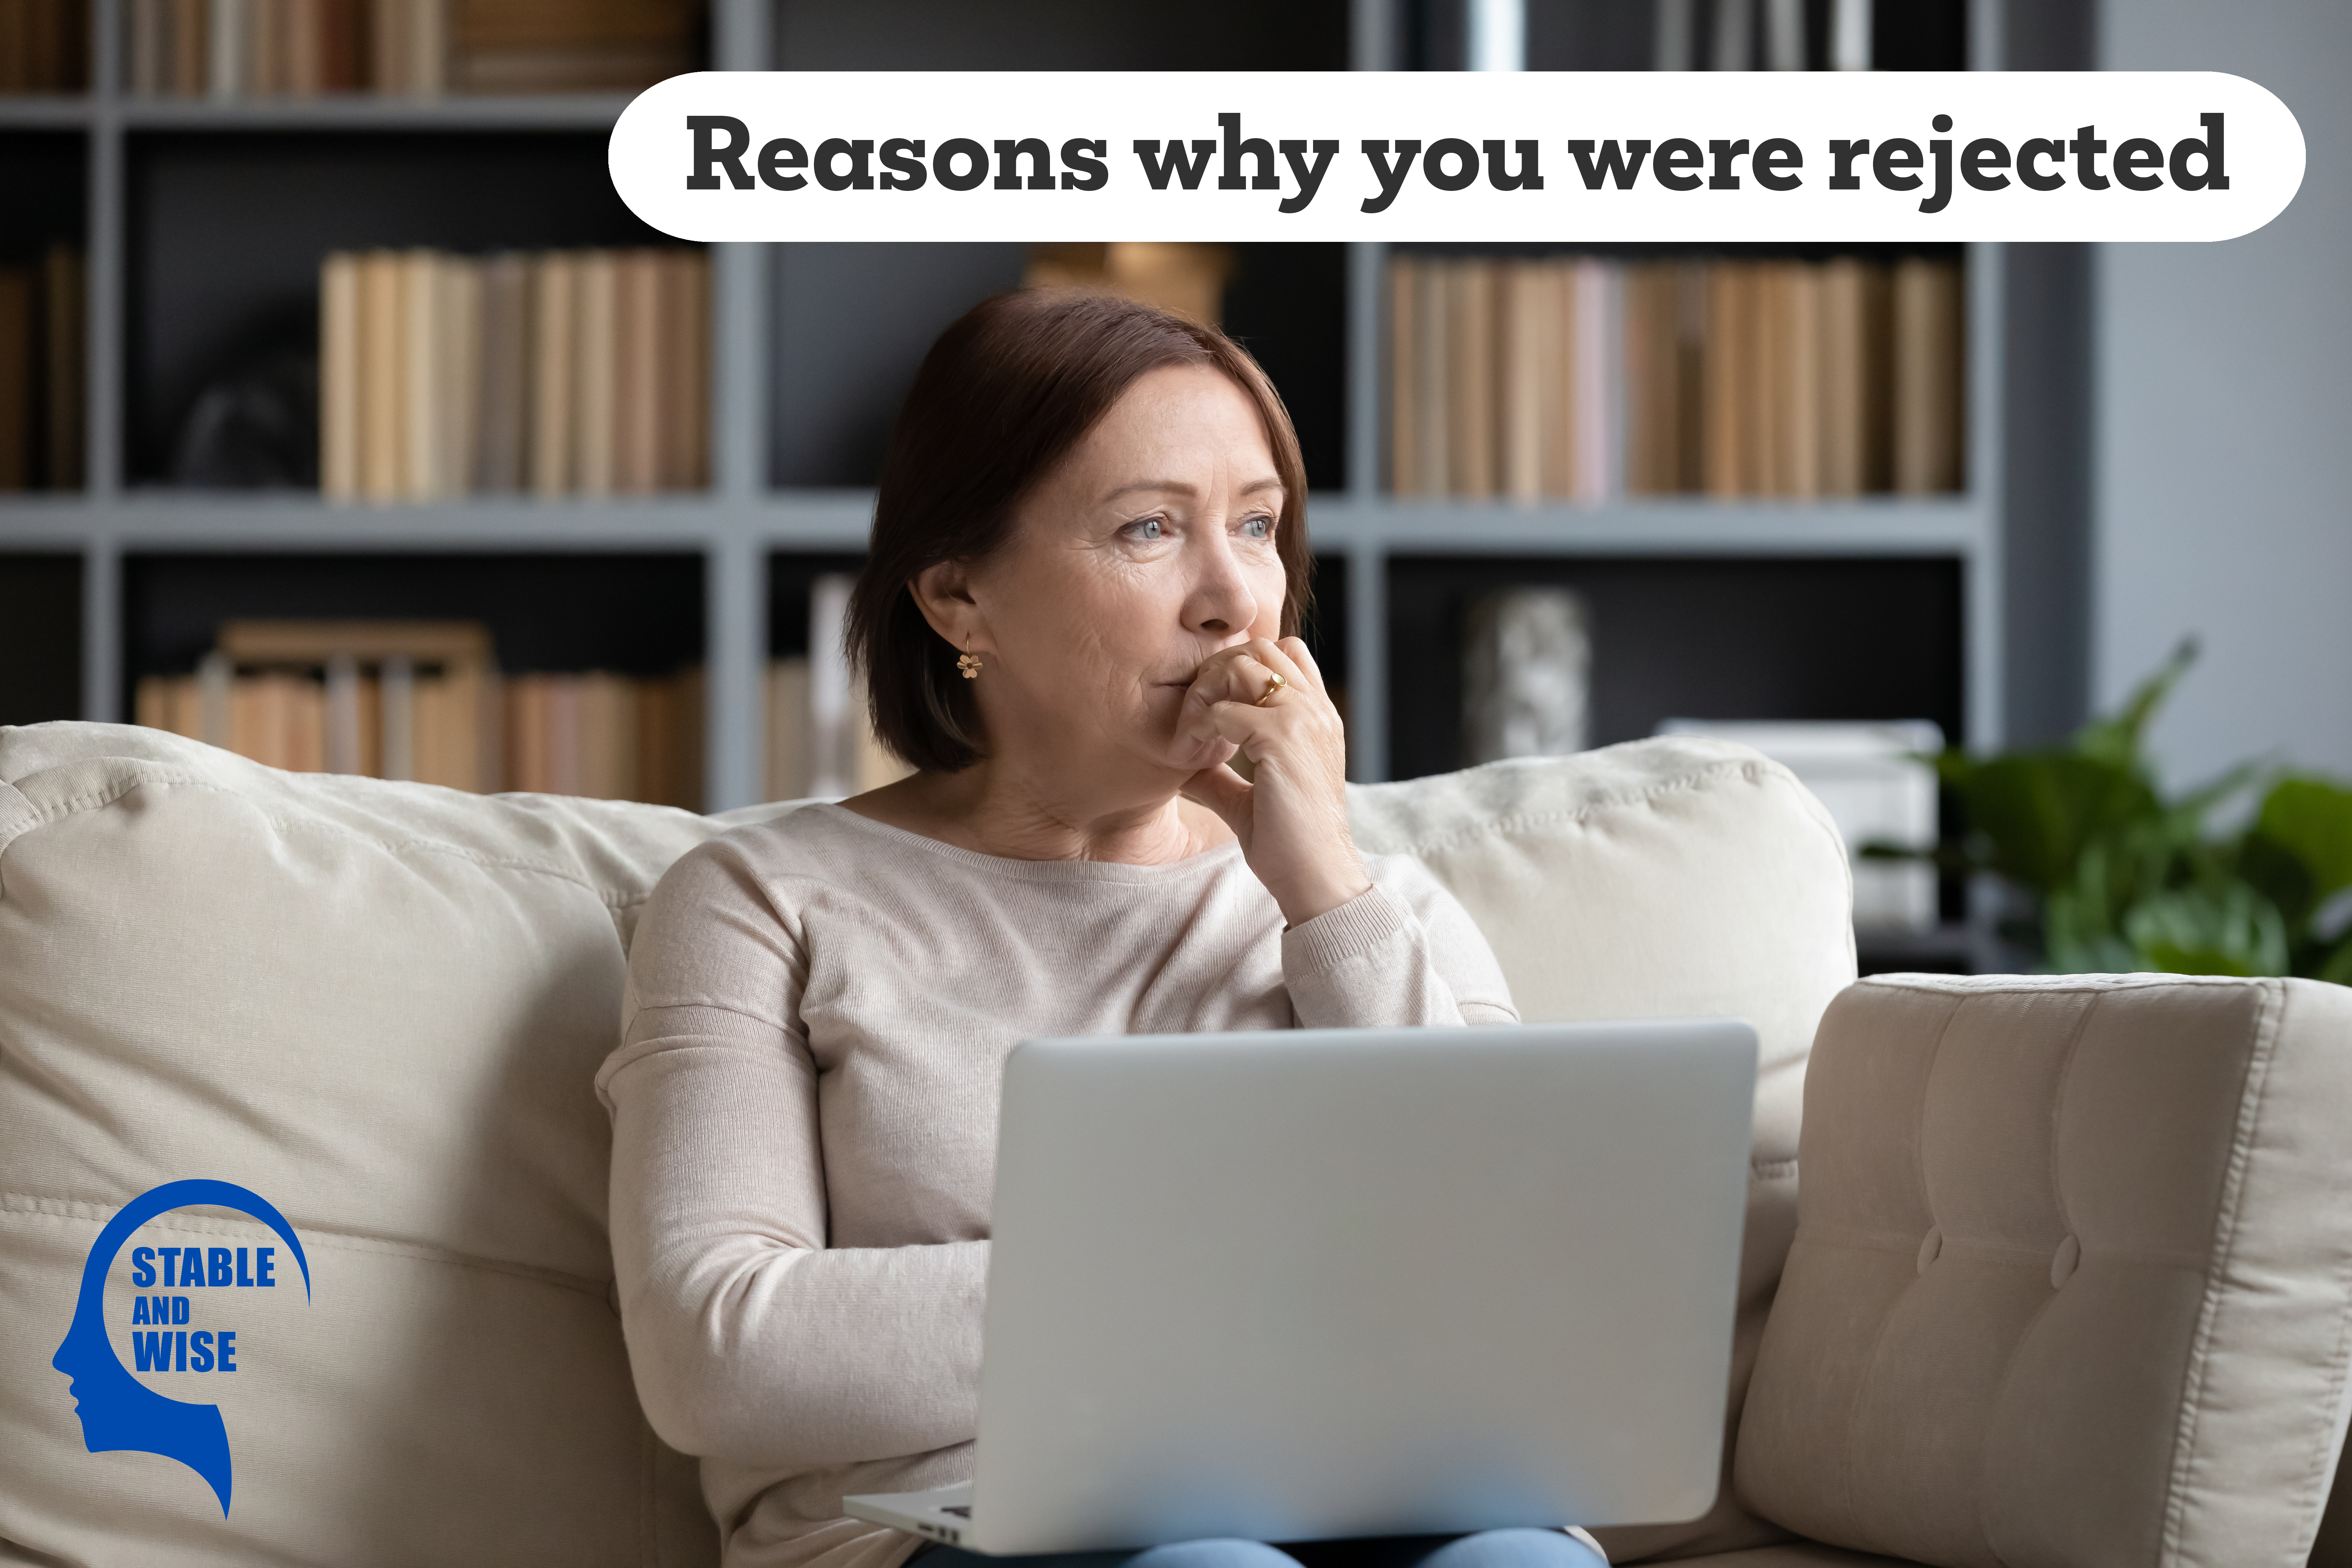 Reasons why you were rejected